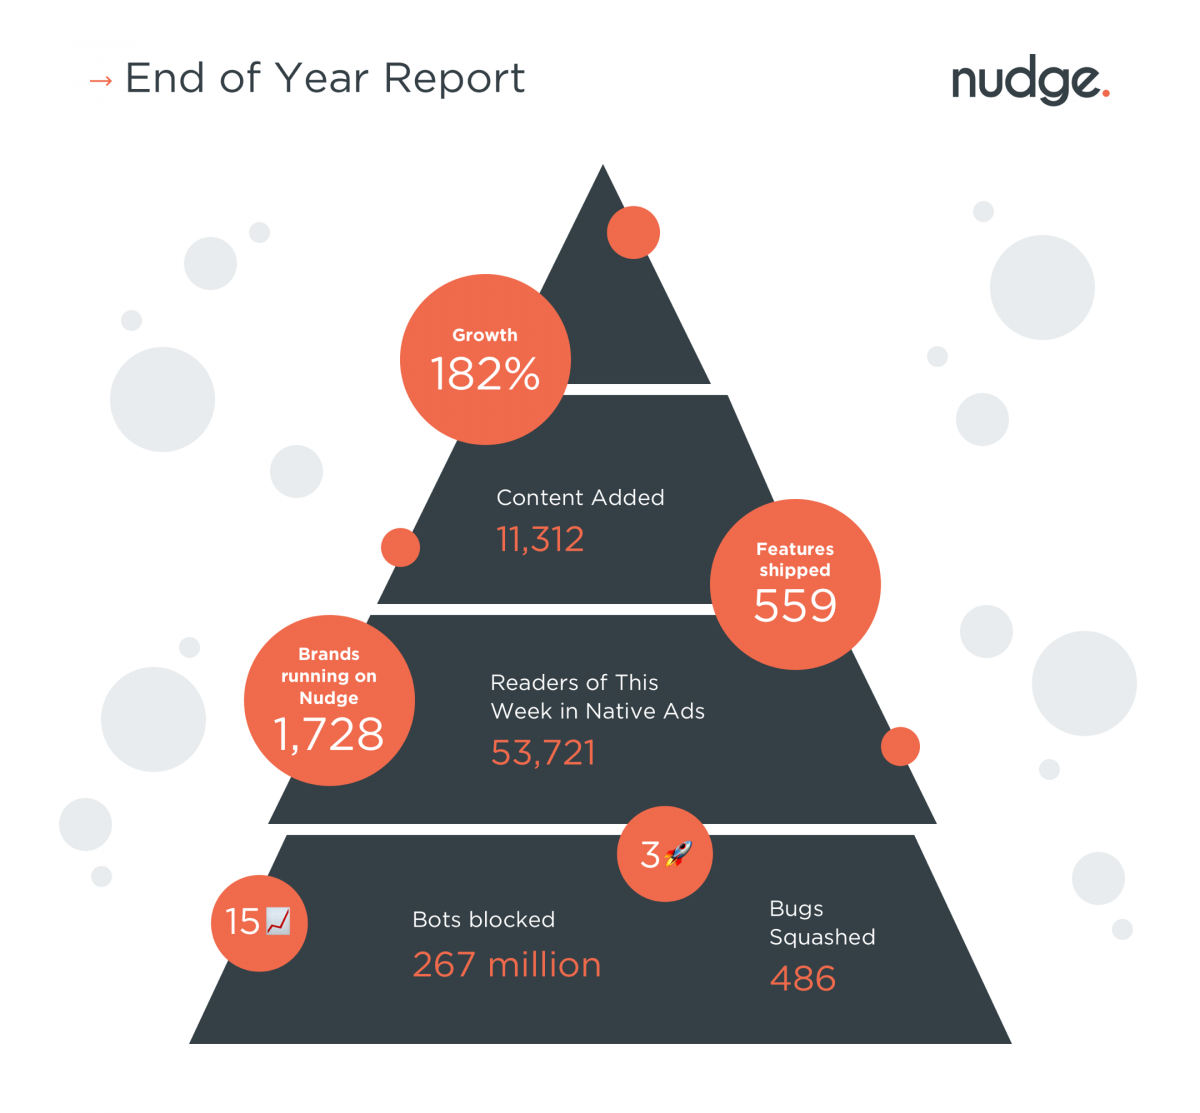 Nudge end of year report 2019